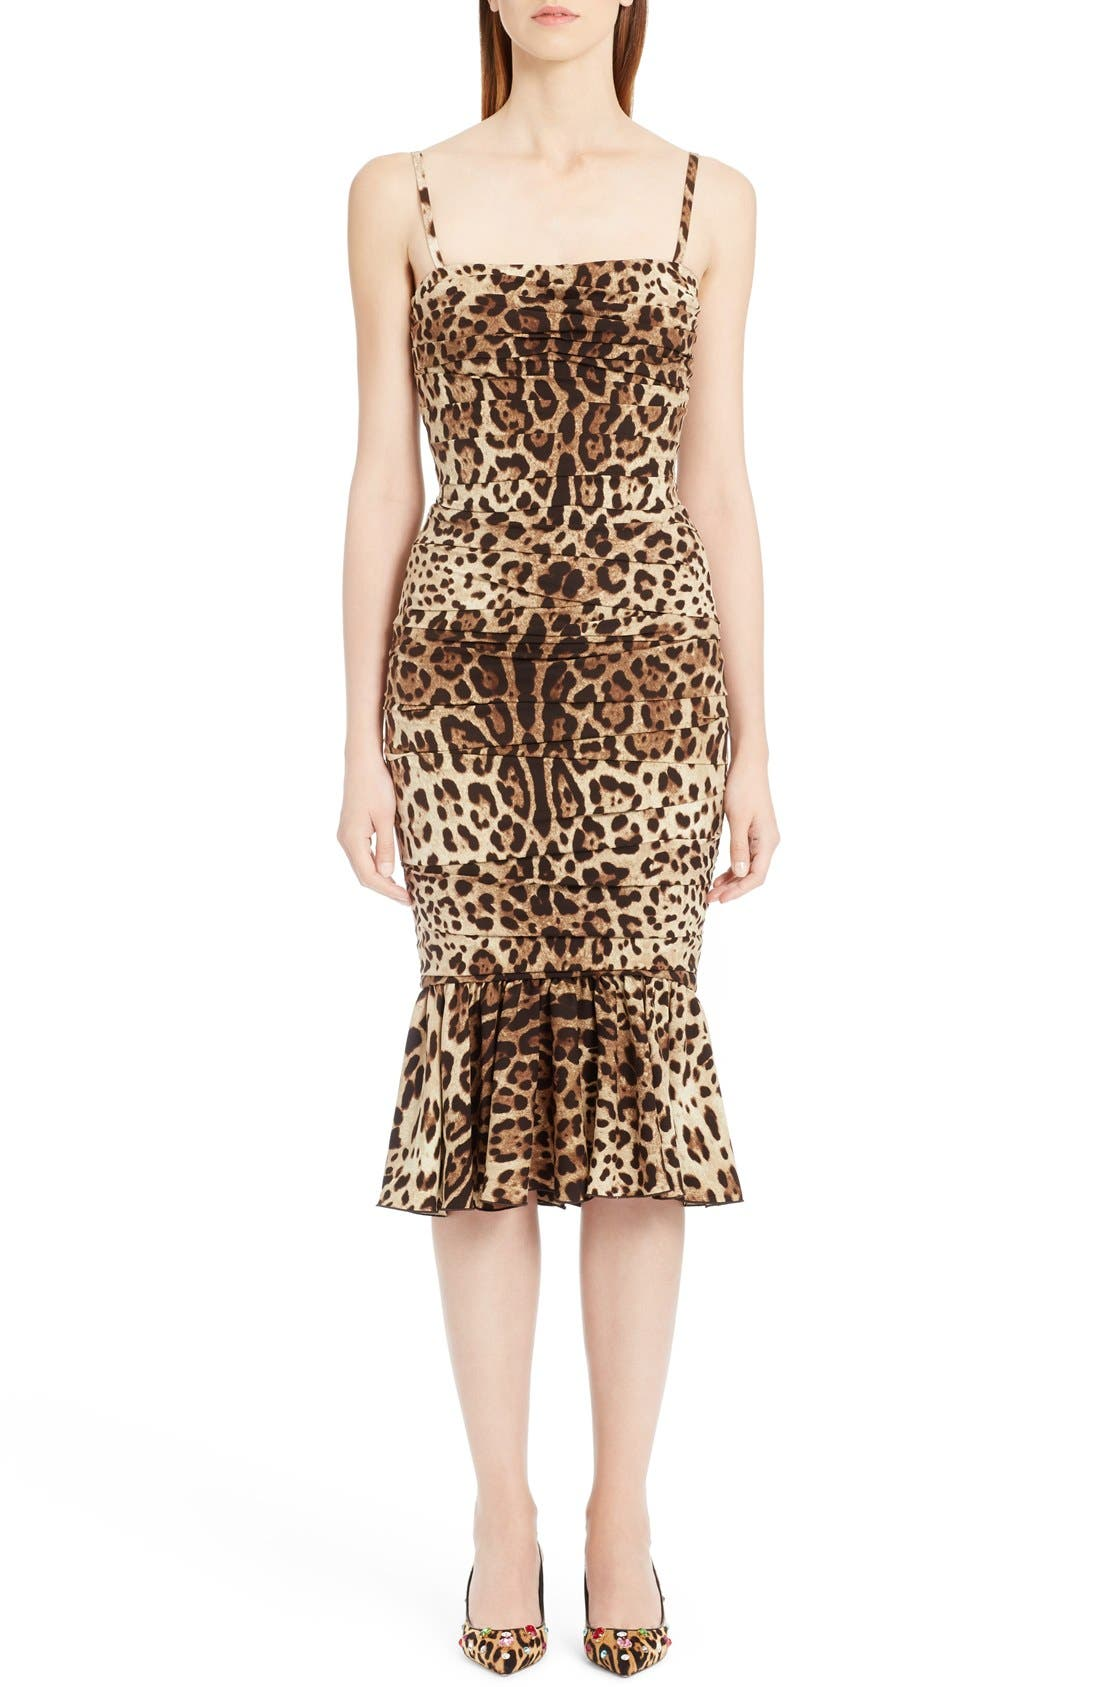 Alternate Image 1 Selected - Dolce&Gabbana Stretch Cady Leopard Print Ruched Dress